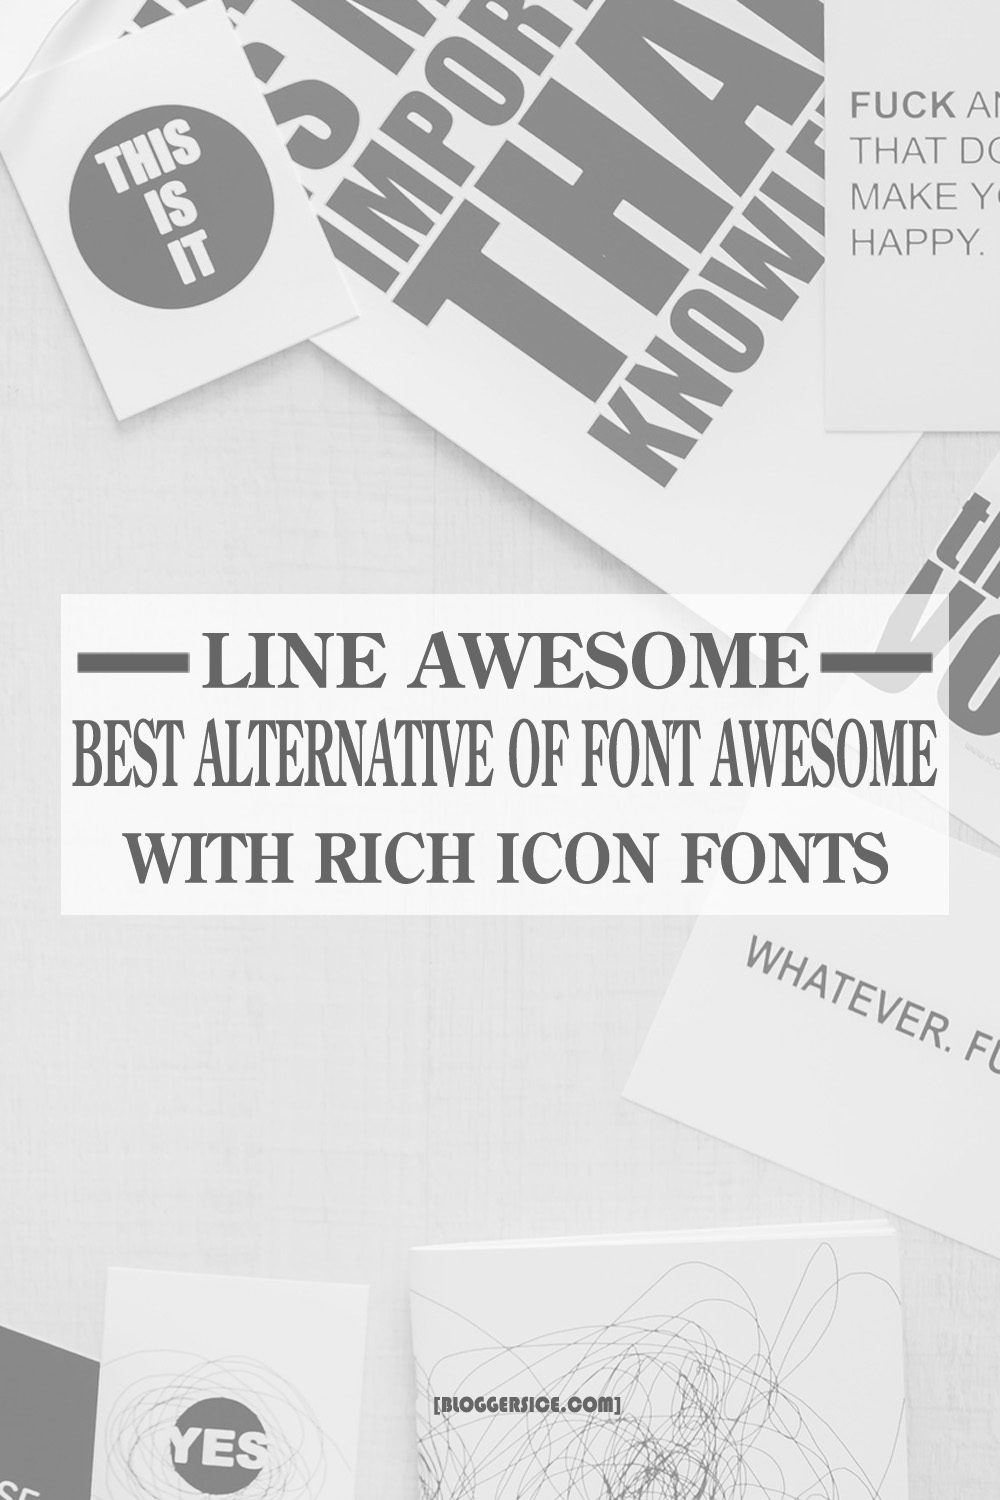 Line Awesome - Best Alternative of Font Awesome with Rich Icon Fonts